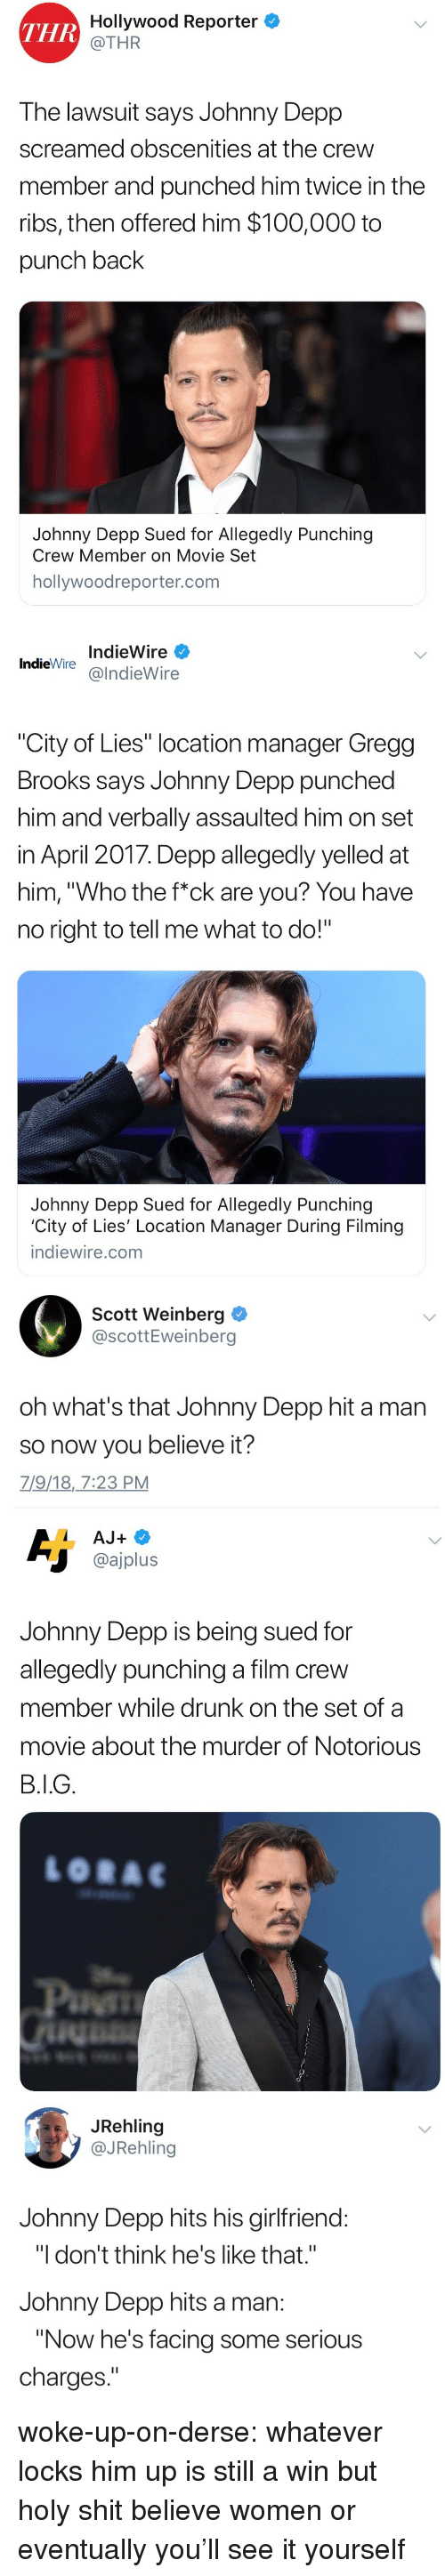 """Johnny Depp: THR  Hollywood Reporter  @THR  The lawsuit says Johnny Depp  screamed obscenities at the crew  member and punched him twice in the  ribs, then offered him $100,000 to  punch back  Johnny Depp Sued for Allegedly Punching  Crew Member on Movie Set  hollywoodreporter.com   IndieWire  IndieWirealndieWire  City of Lies"""" location manager Gregg  Brooks says Johnny Depp punched  him and verbally assaulted him on set  in Aprll Z01/. Depp allegedly yelled at  him, """"Who the f*ck are you? You have  no right to tell me what to do!""""  Johnny Depp Sued for Allegedly Punching  City of Lies' Location Manager During Filming  indiewire.com   Scott Weinberg  @scottEweinberg  oh what's that Johnny Depp hit a man  so now you believe it?  7/9/18,_7:23 PM   @ajplus  Johnny Depp is being sued for  allegedly punching a film crew  member while drunk on the set of a  movie about the murder of Notorious   JRehling  @JRehling  Johnny Depp hits his girlfriend  """"I don't think he's like that.""""  Johnny Depp hits a man  """"Now he's facing some serious  charges woke-up-on-derse: whatever locks him up is still a win but holy shit believe women or eventually you'll see it yourself"""